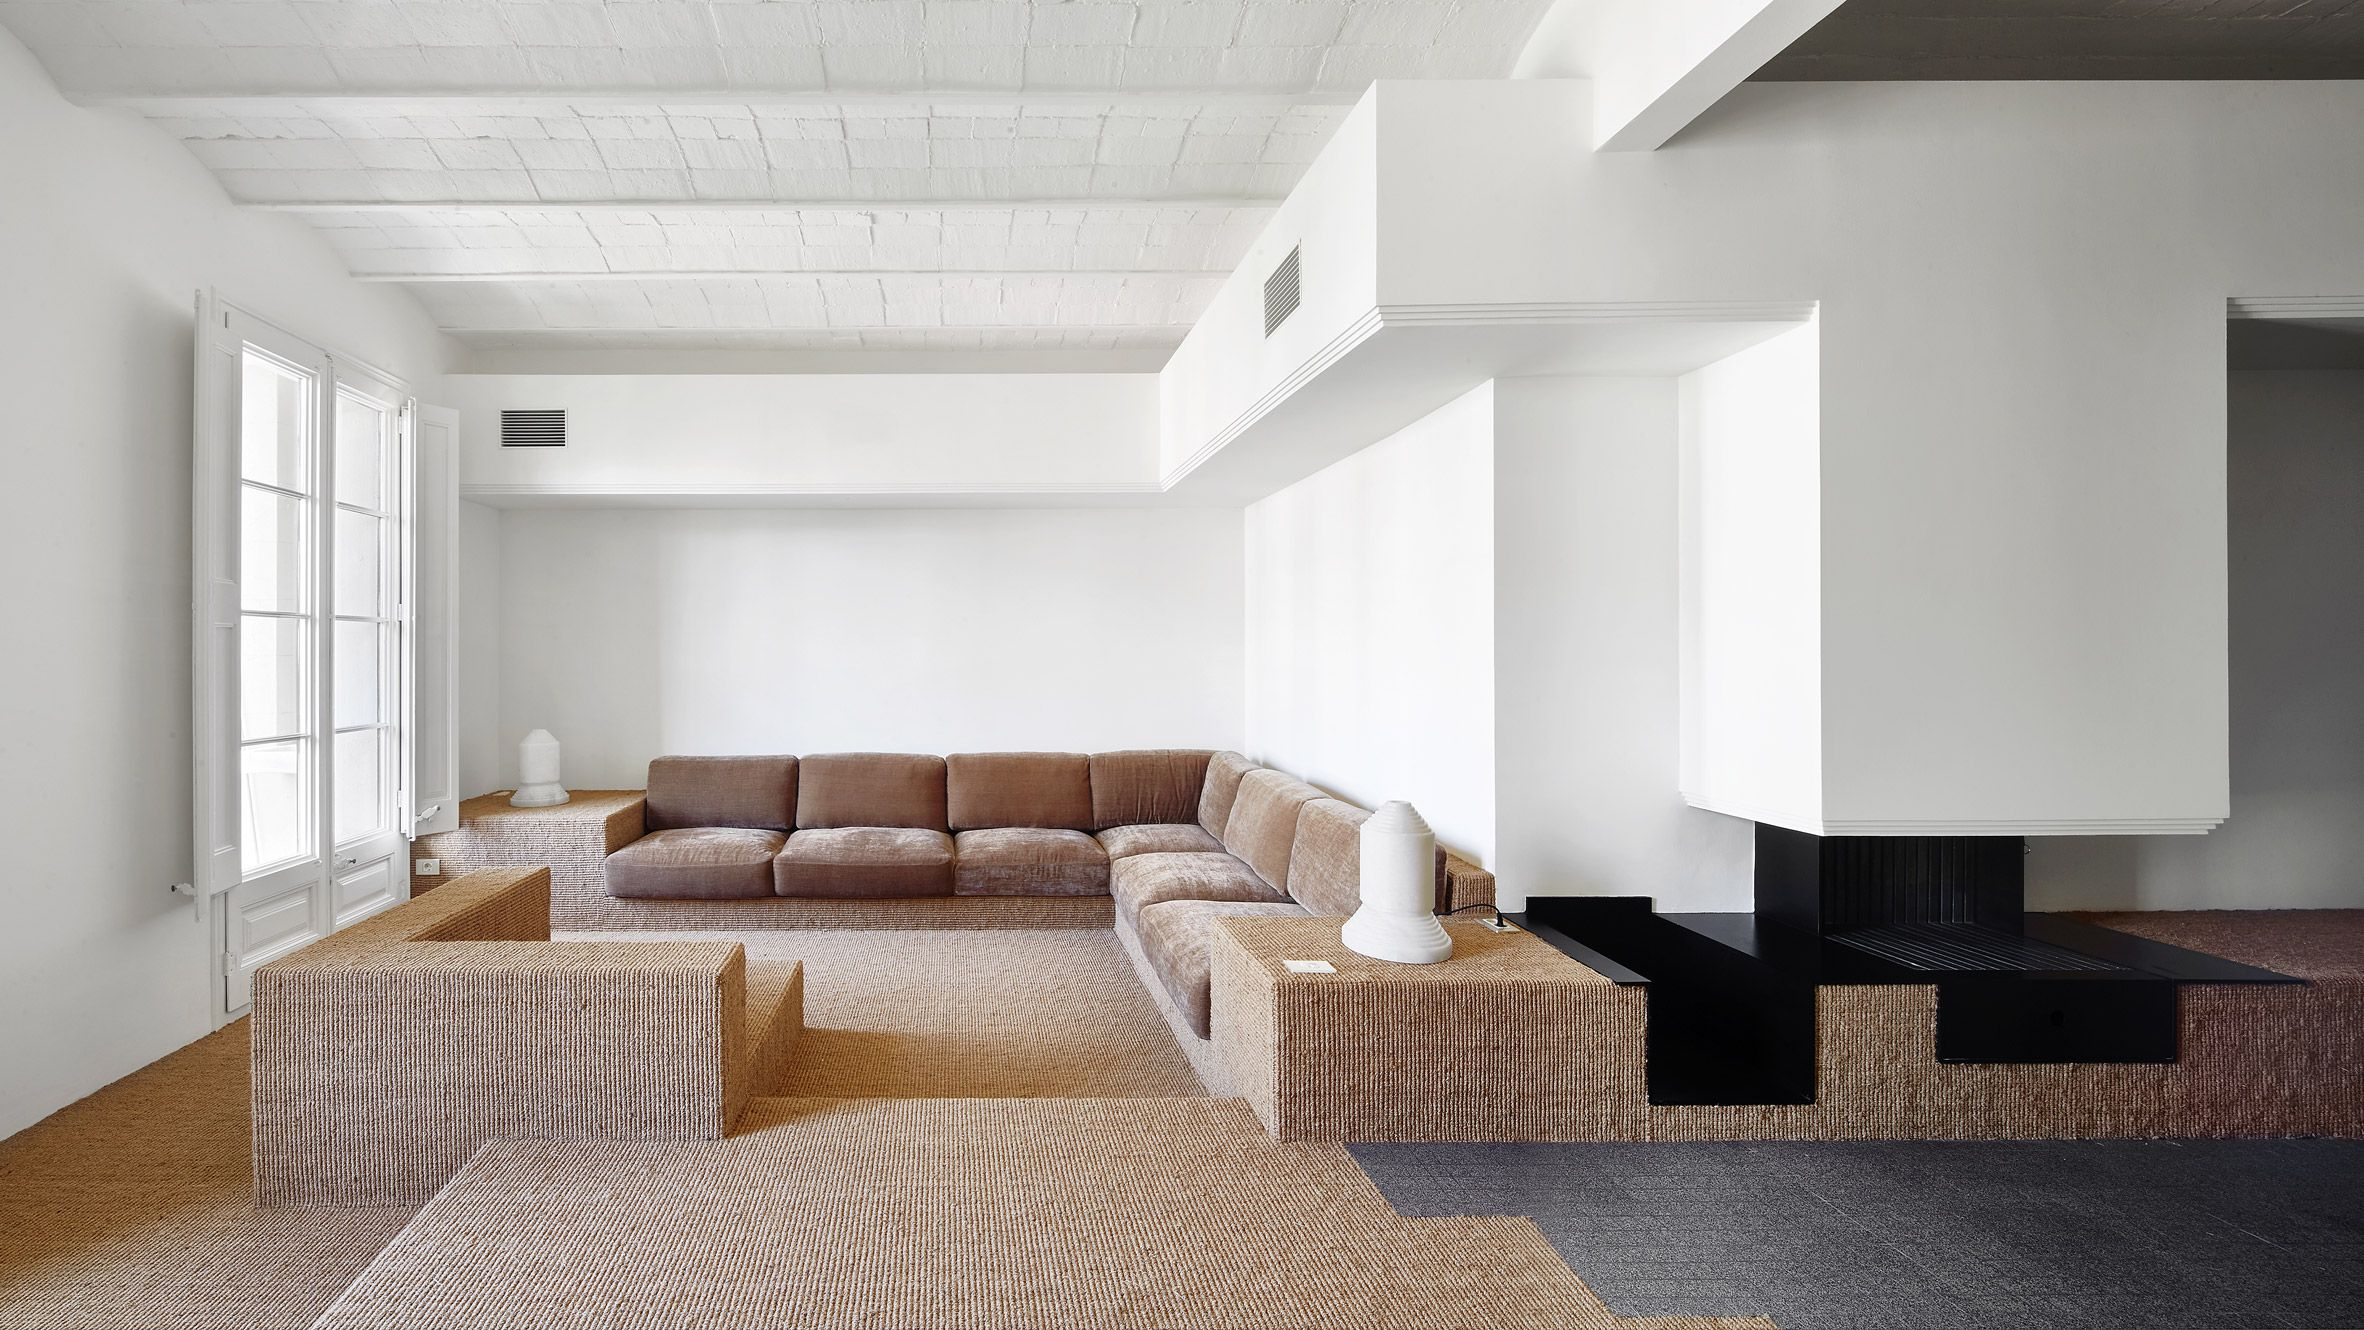 arquitectura g girona st renovation an oddly fascinating use of carpet barcelona 2015